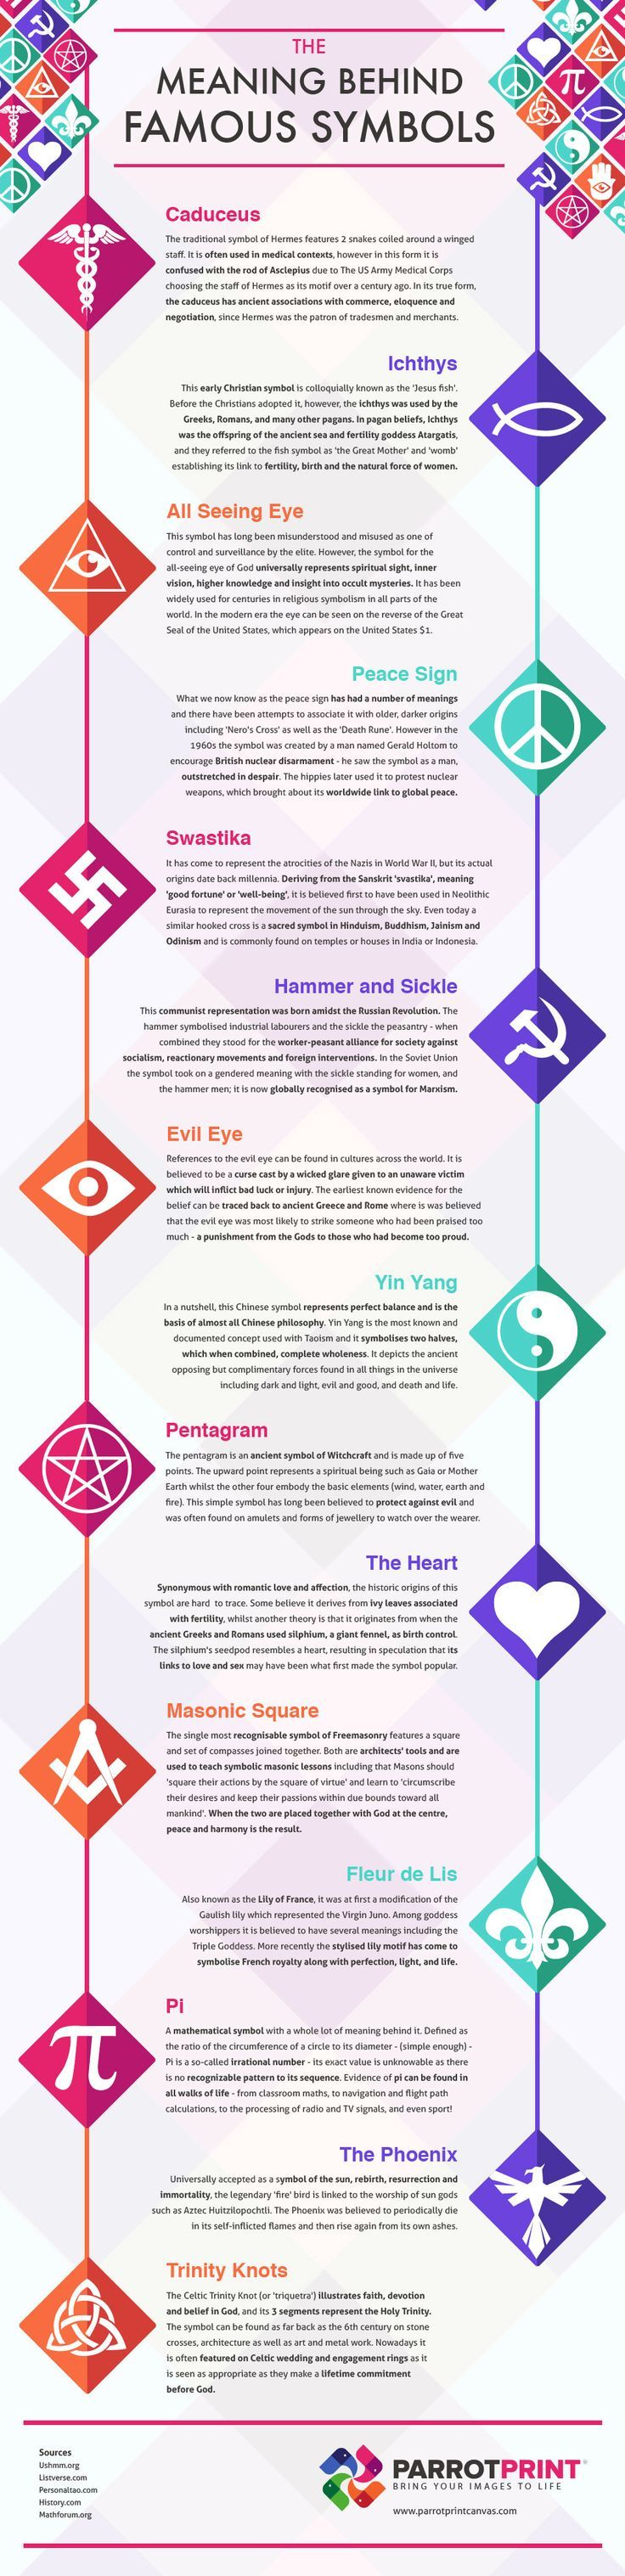 Indulge your curiosity and find out below what the following symbols really mean. There might be a few surprises along the way!